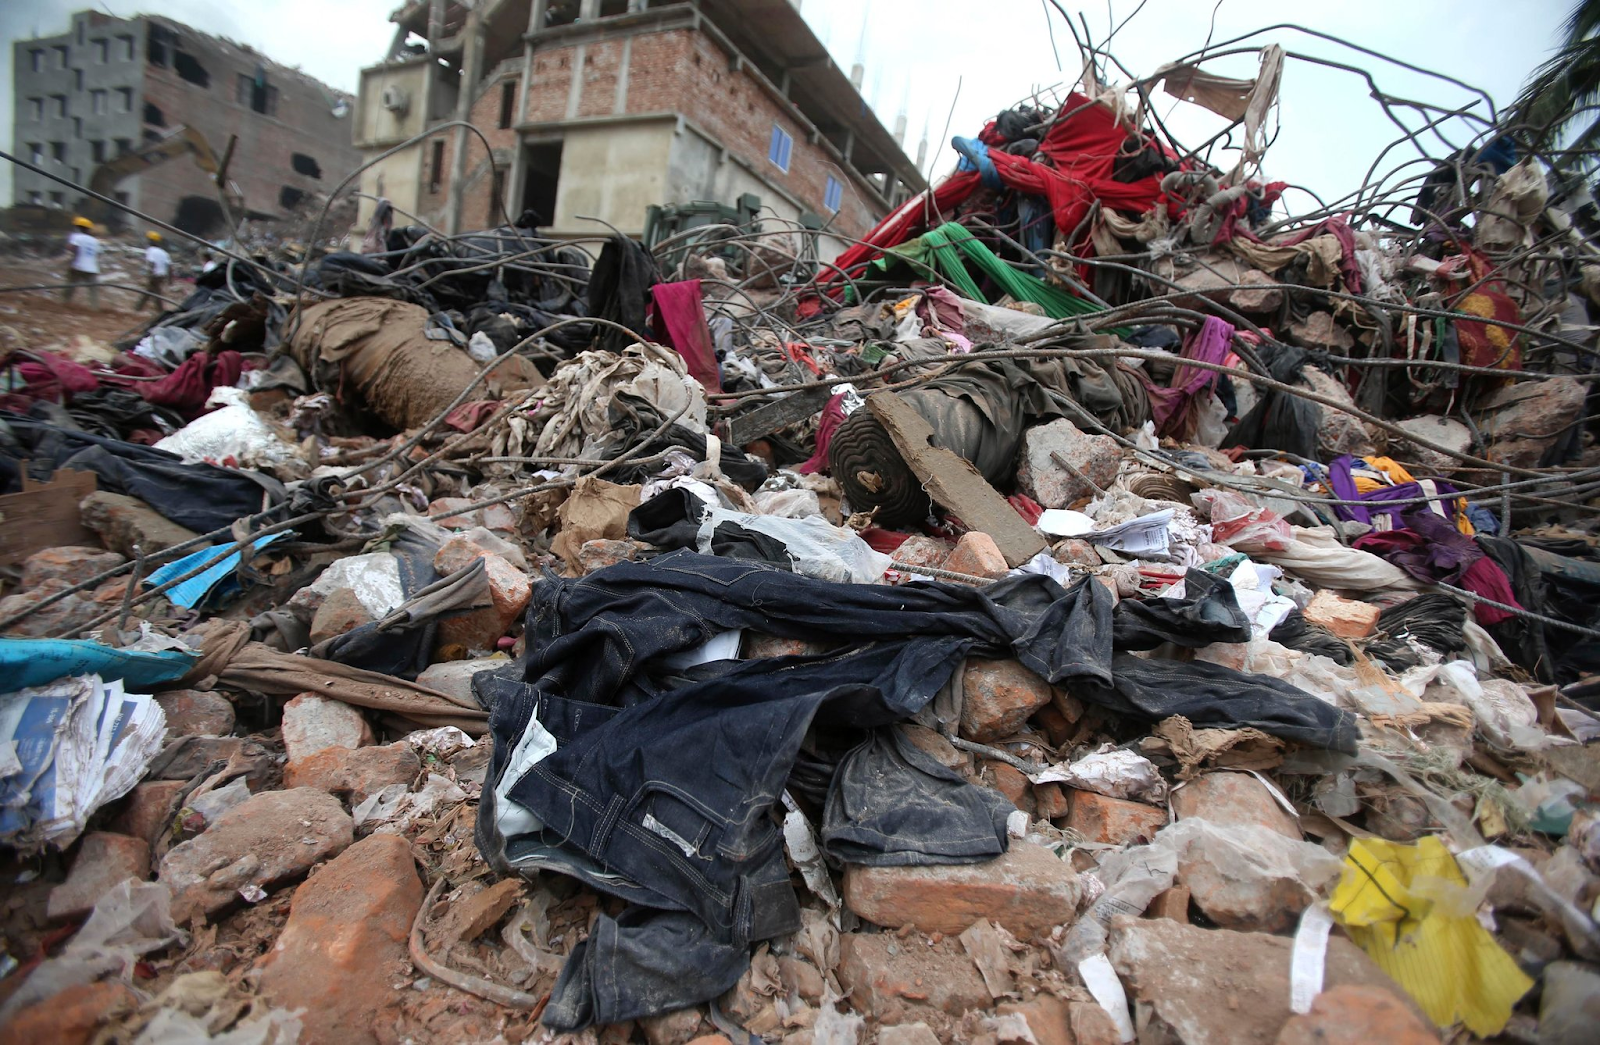 www.nytimes.com/2019/09/03/books/review/how-fast-fashion-is-destroying-the-planet.html.